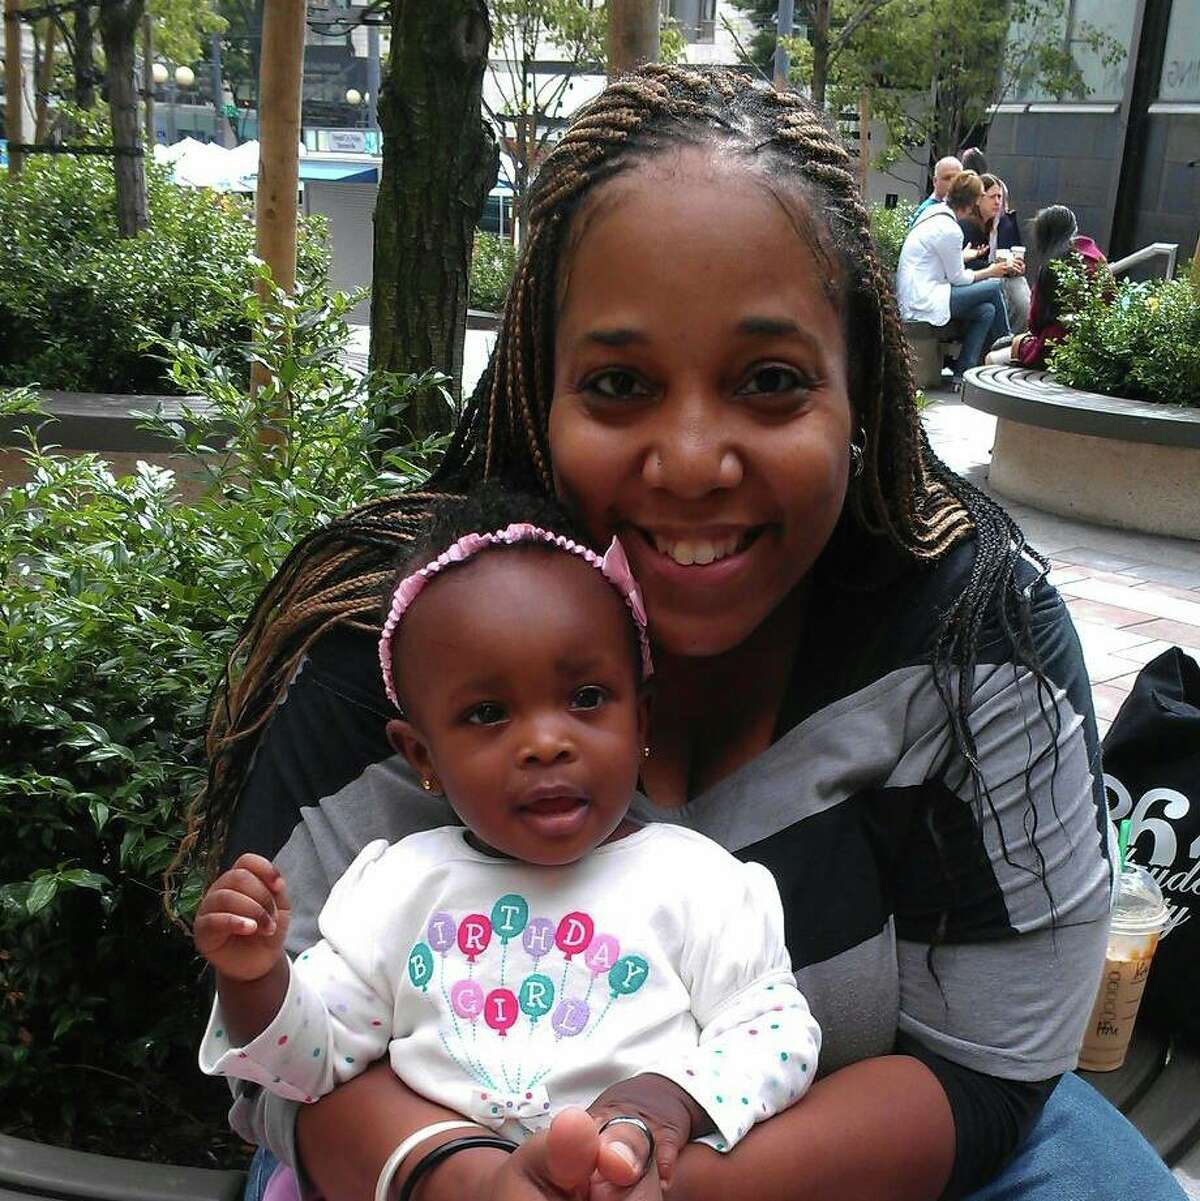 Theresa Cochran and daughter Sarah, pictured in a family photo. Sarah was 2 when she fell from a Seattle apartment window on Aug. 12, 2014, and died.